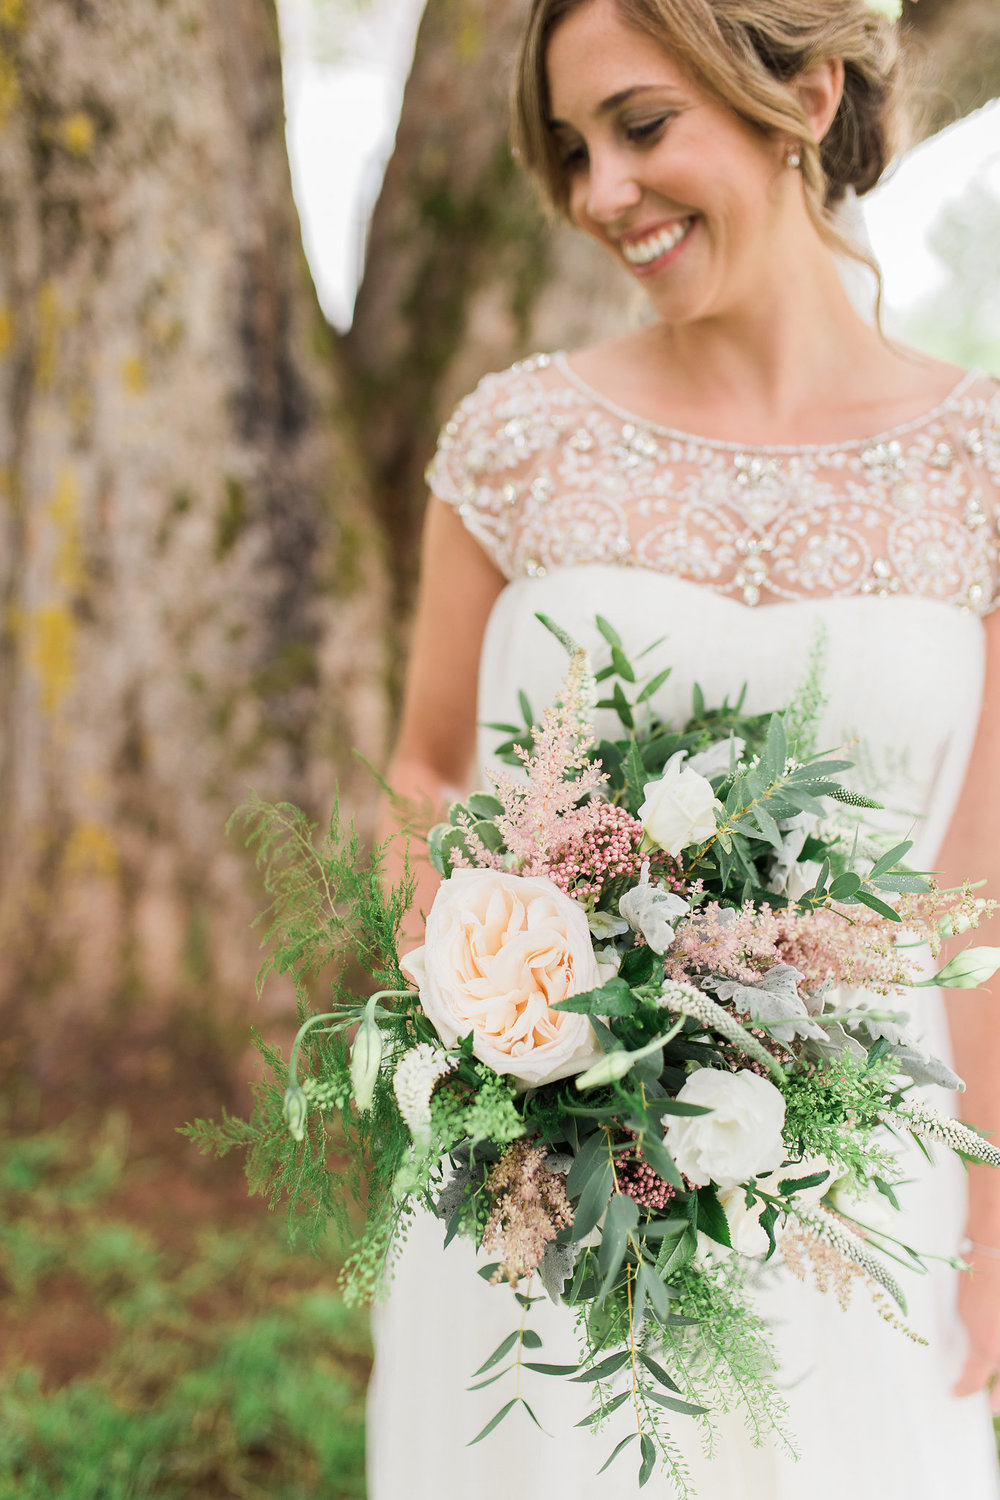 Caley Joy Photography, Prestige Floral Studio